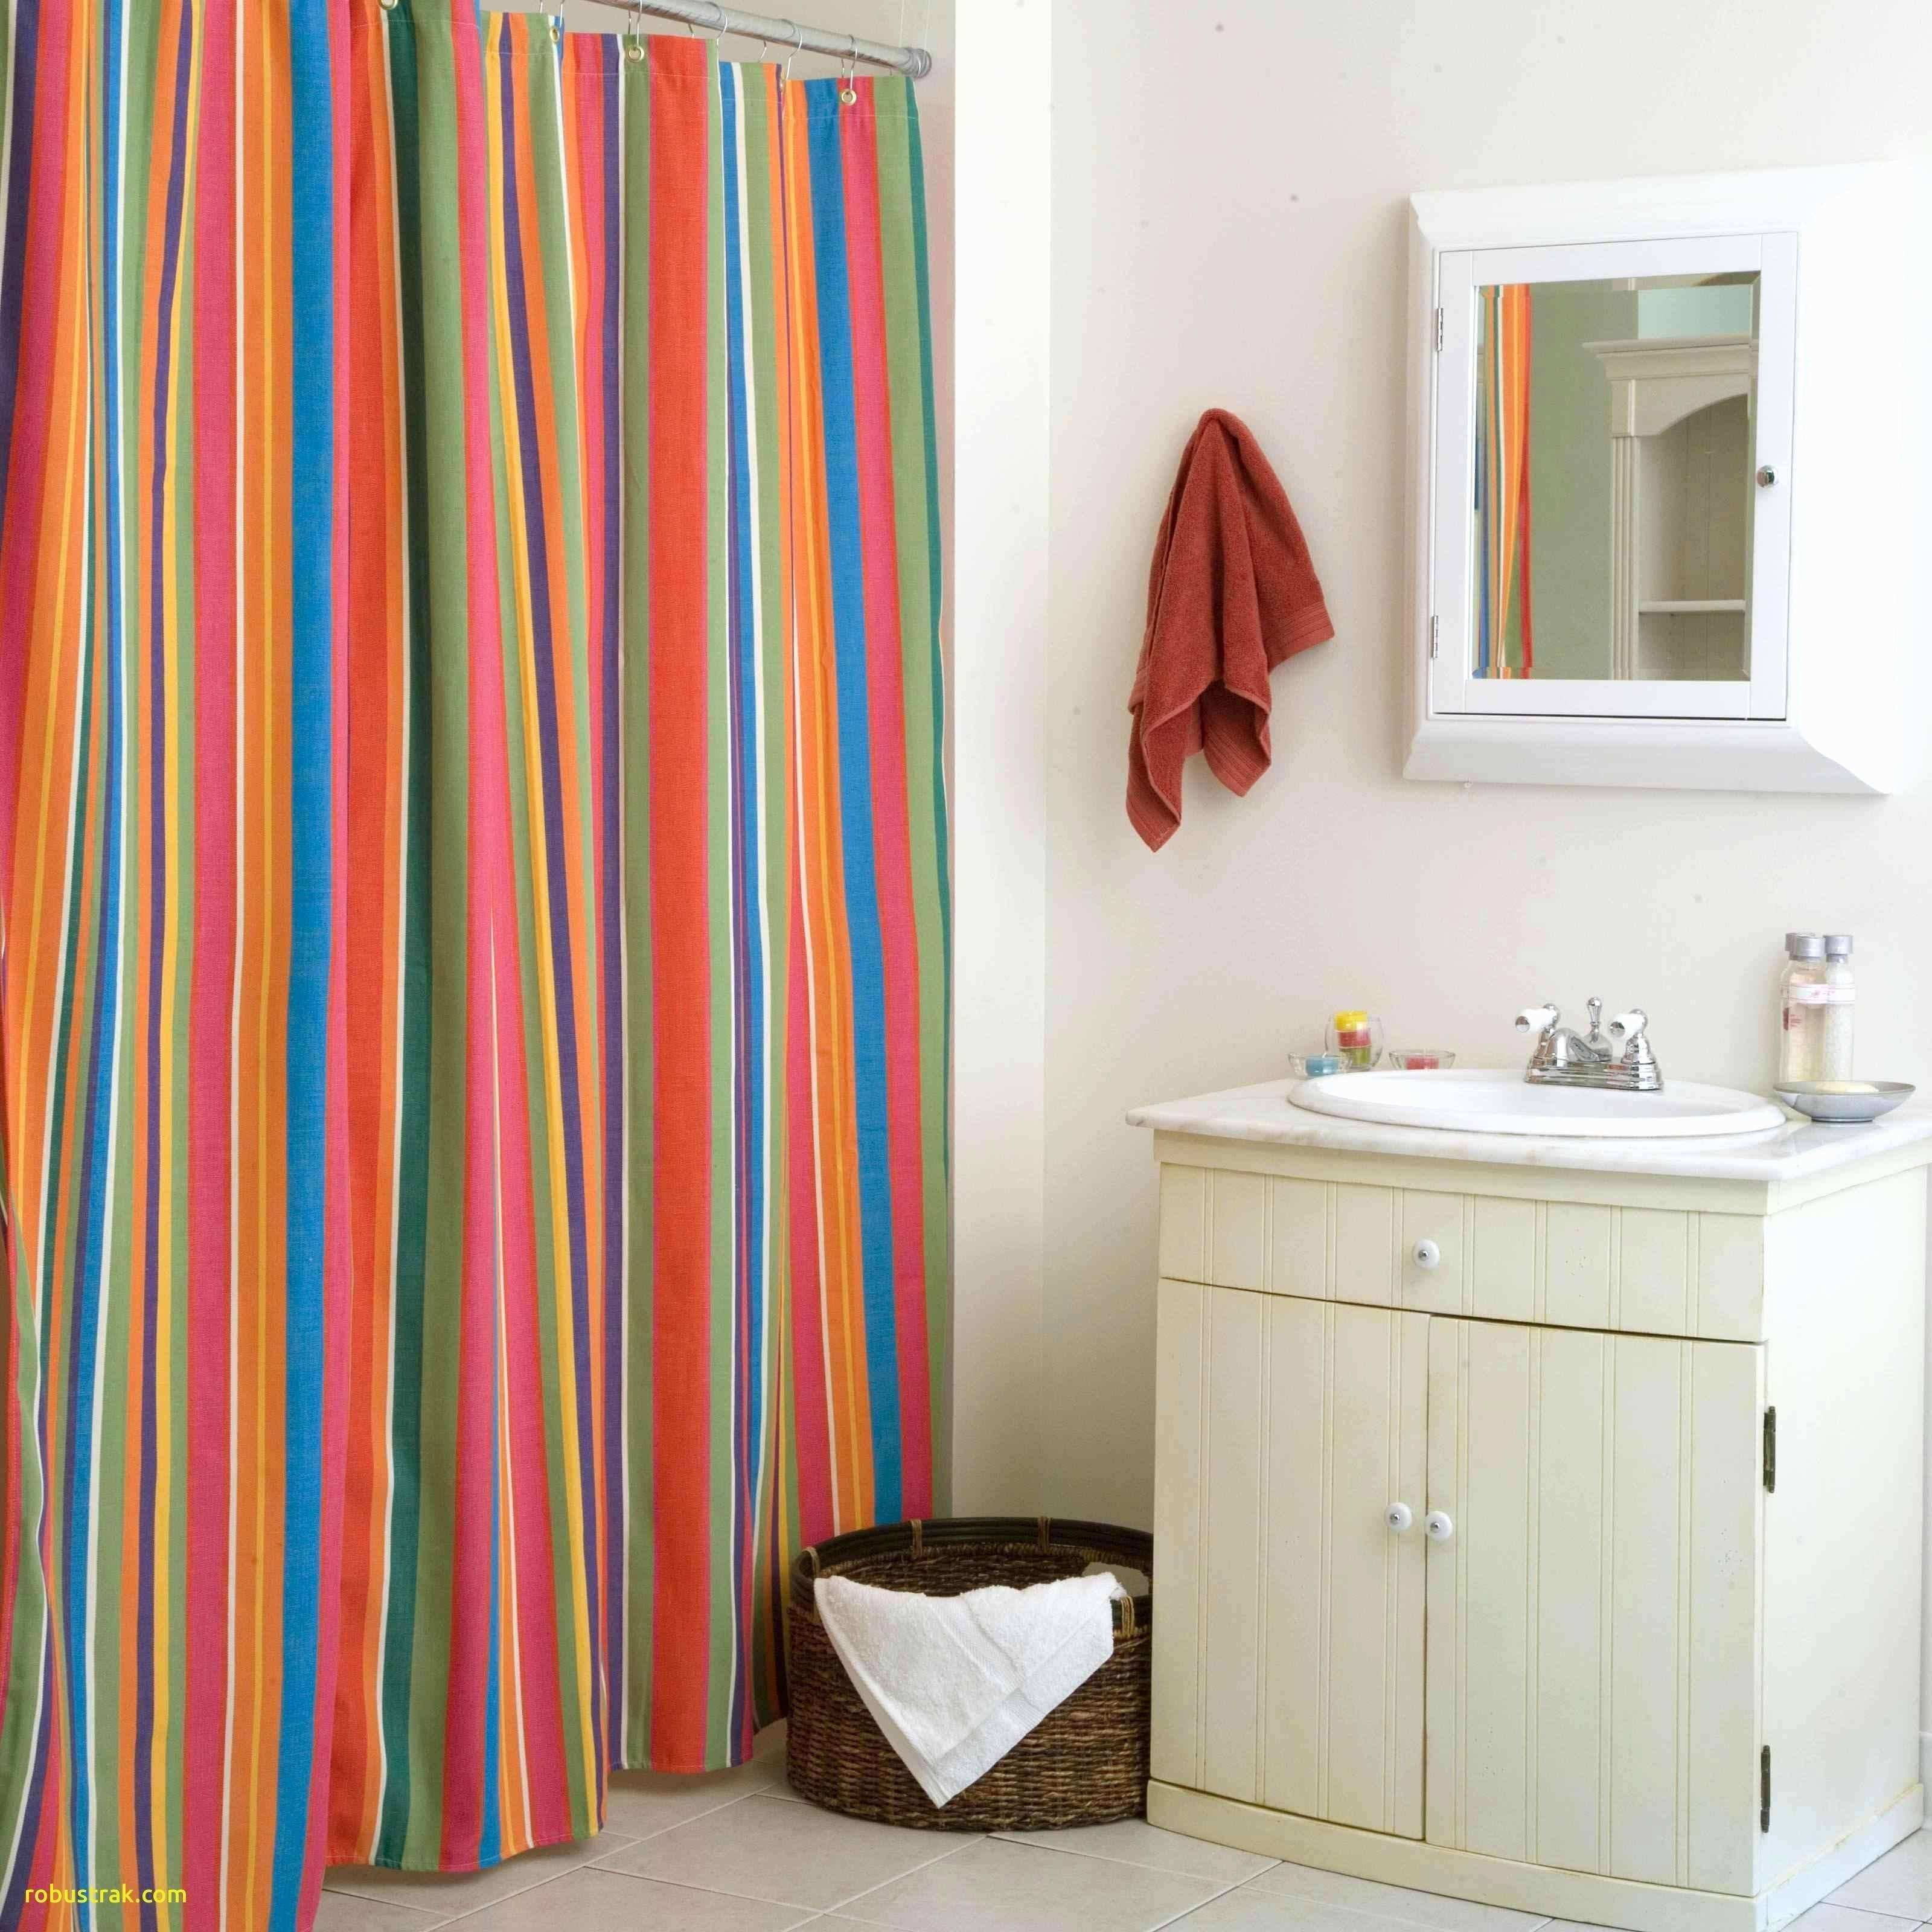 5 Inspiring Different Ways to Hang Curtains Home